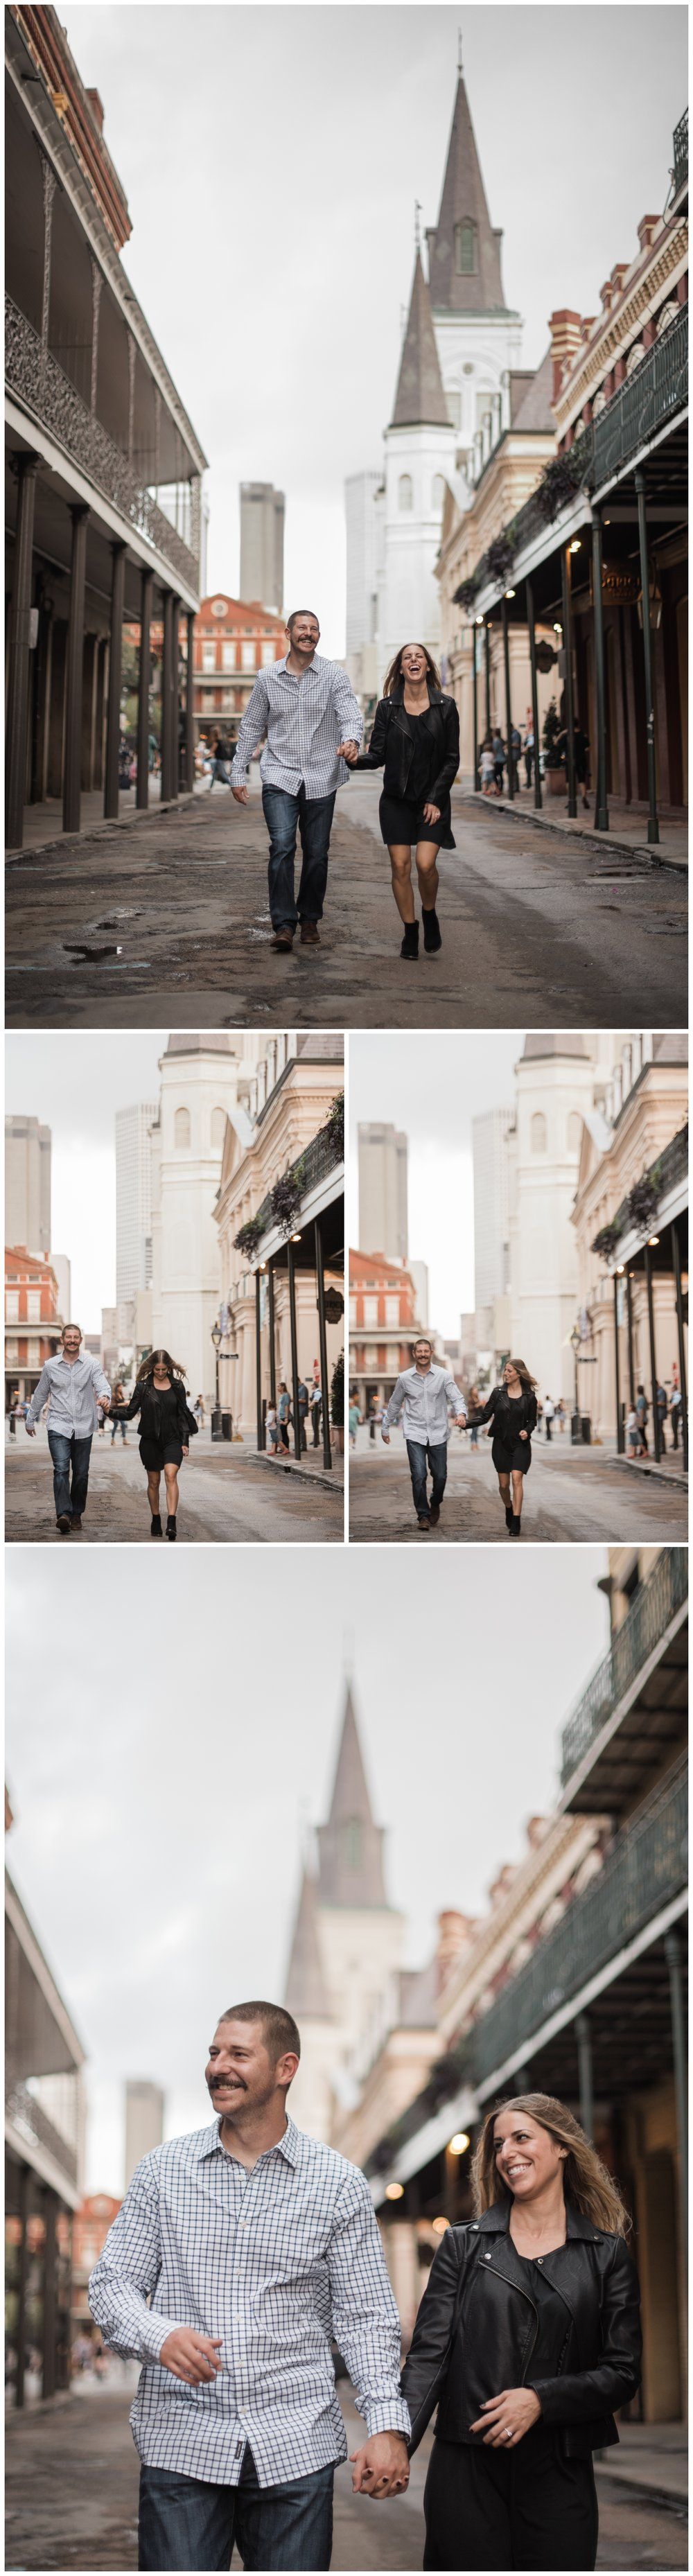 New-Orleans-Engagement-photos- French-Quarter-Proposal-New-Orleans-Photographer- kallistia-photography_0008.jpg